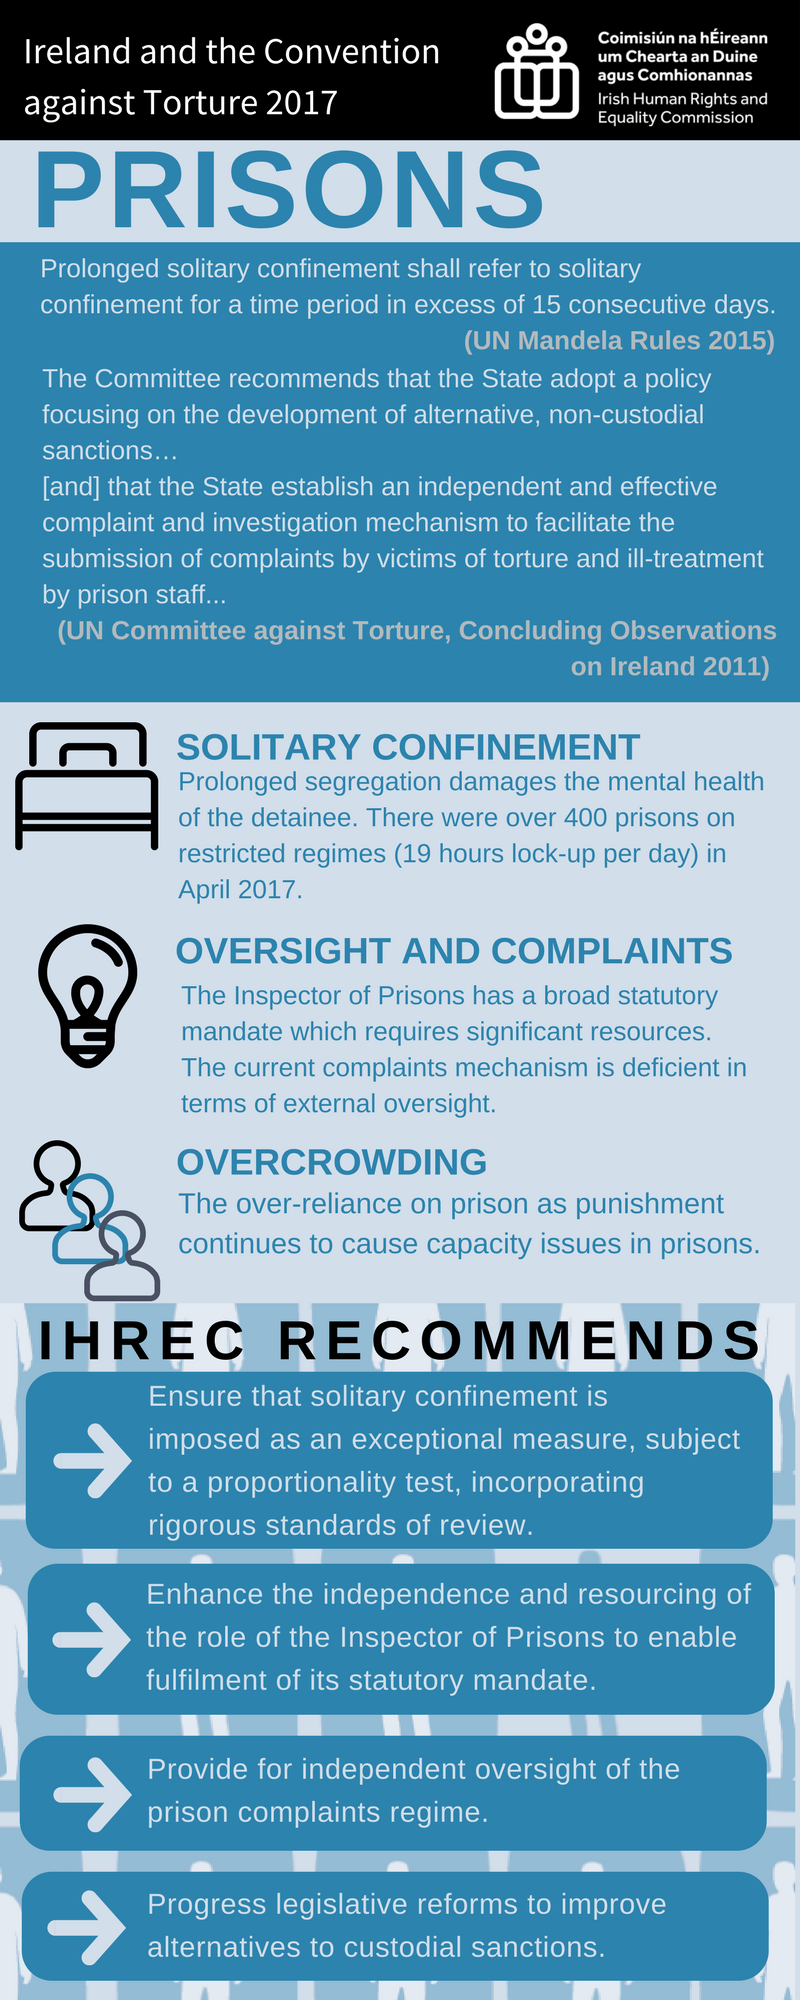 Solitary confinement, overcrowding and oversight of prisons are raised in our #UNCAT report. #UNCAT61 Read more: https://t.co/mlpDYcbQ31 https://t.co/RYh0udLvbu